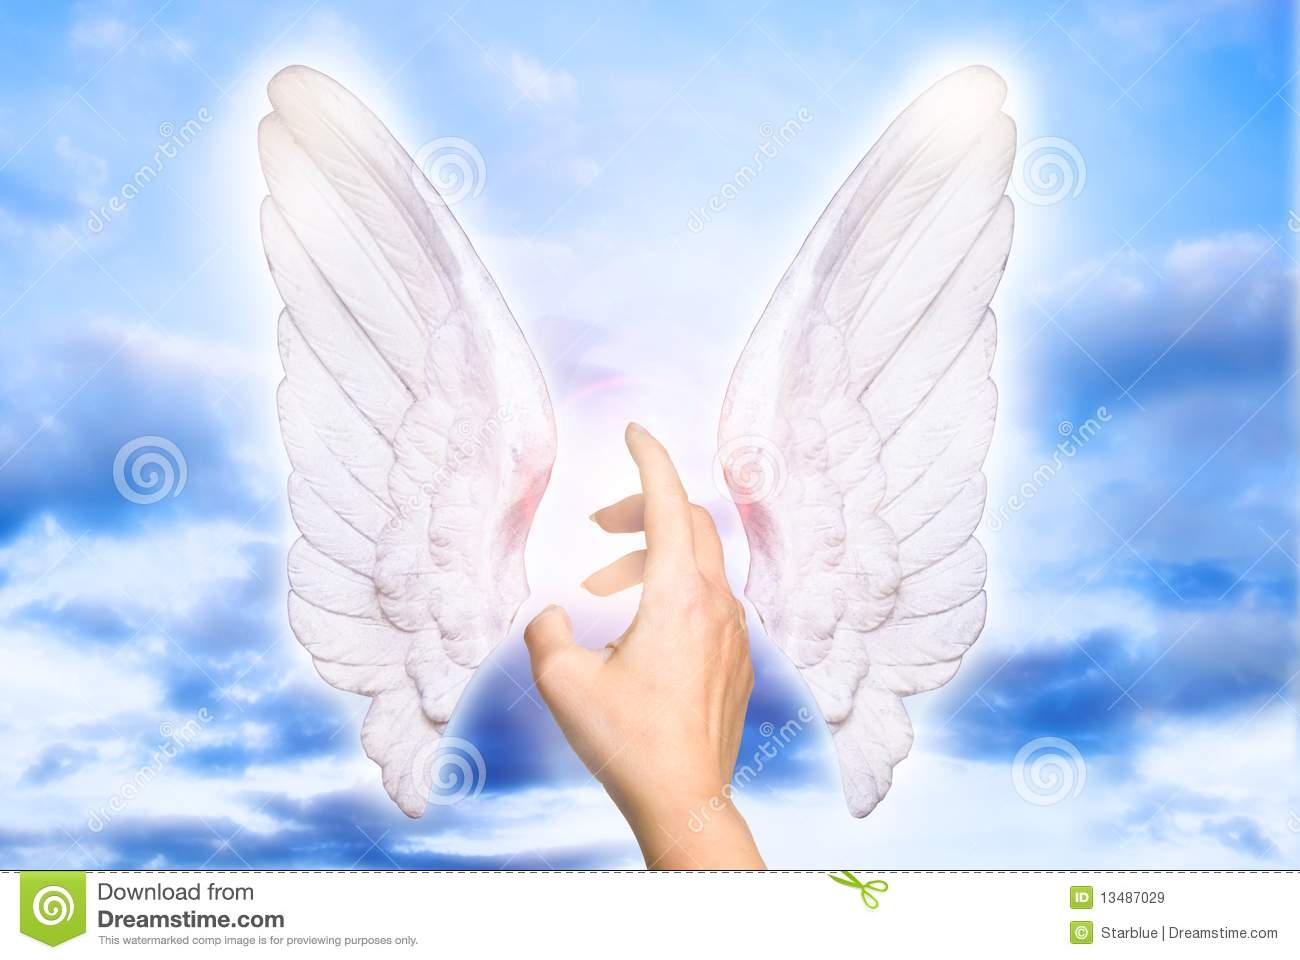 Stock Photos Royalty Free My angel Royalty Free Stock